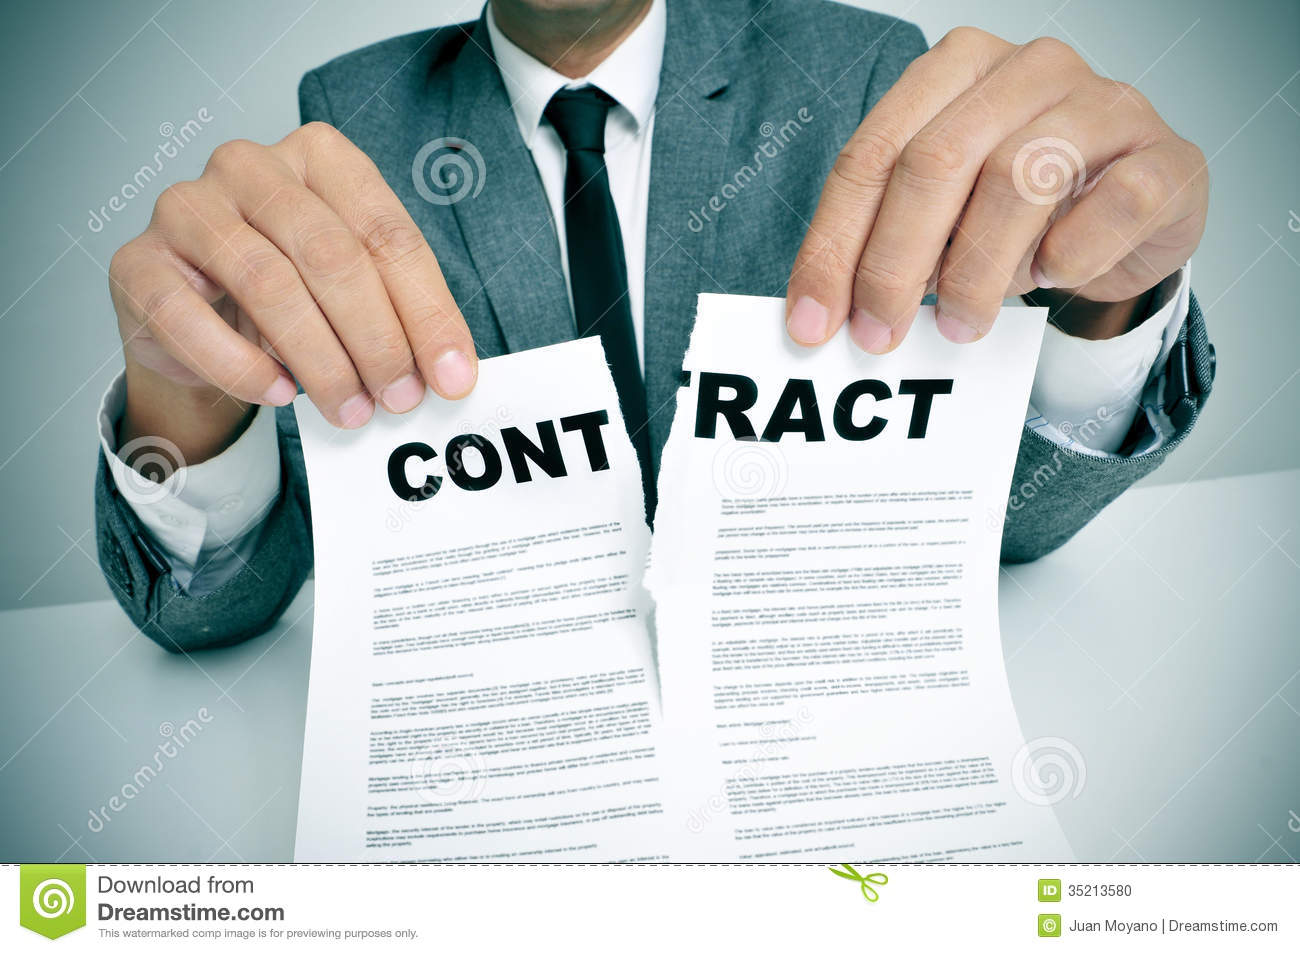 Man wearing a suit sitting in a table ripping up a contract.